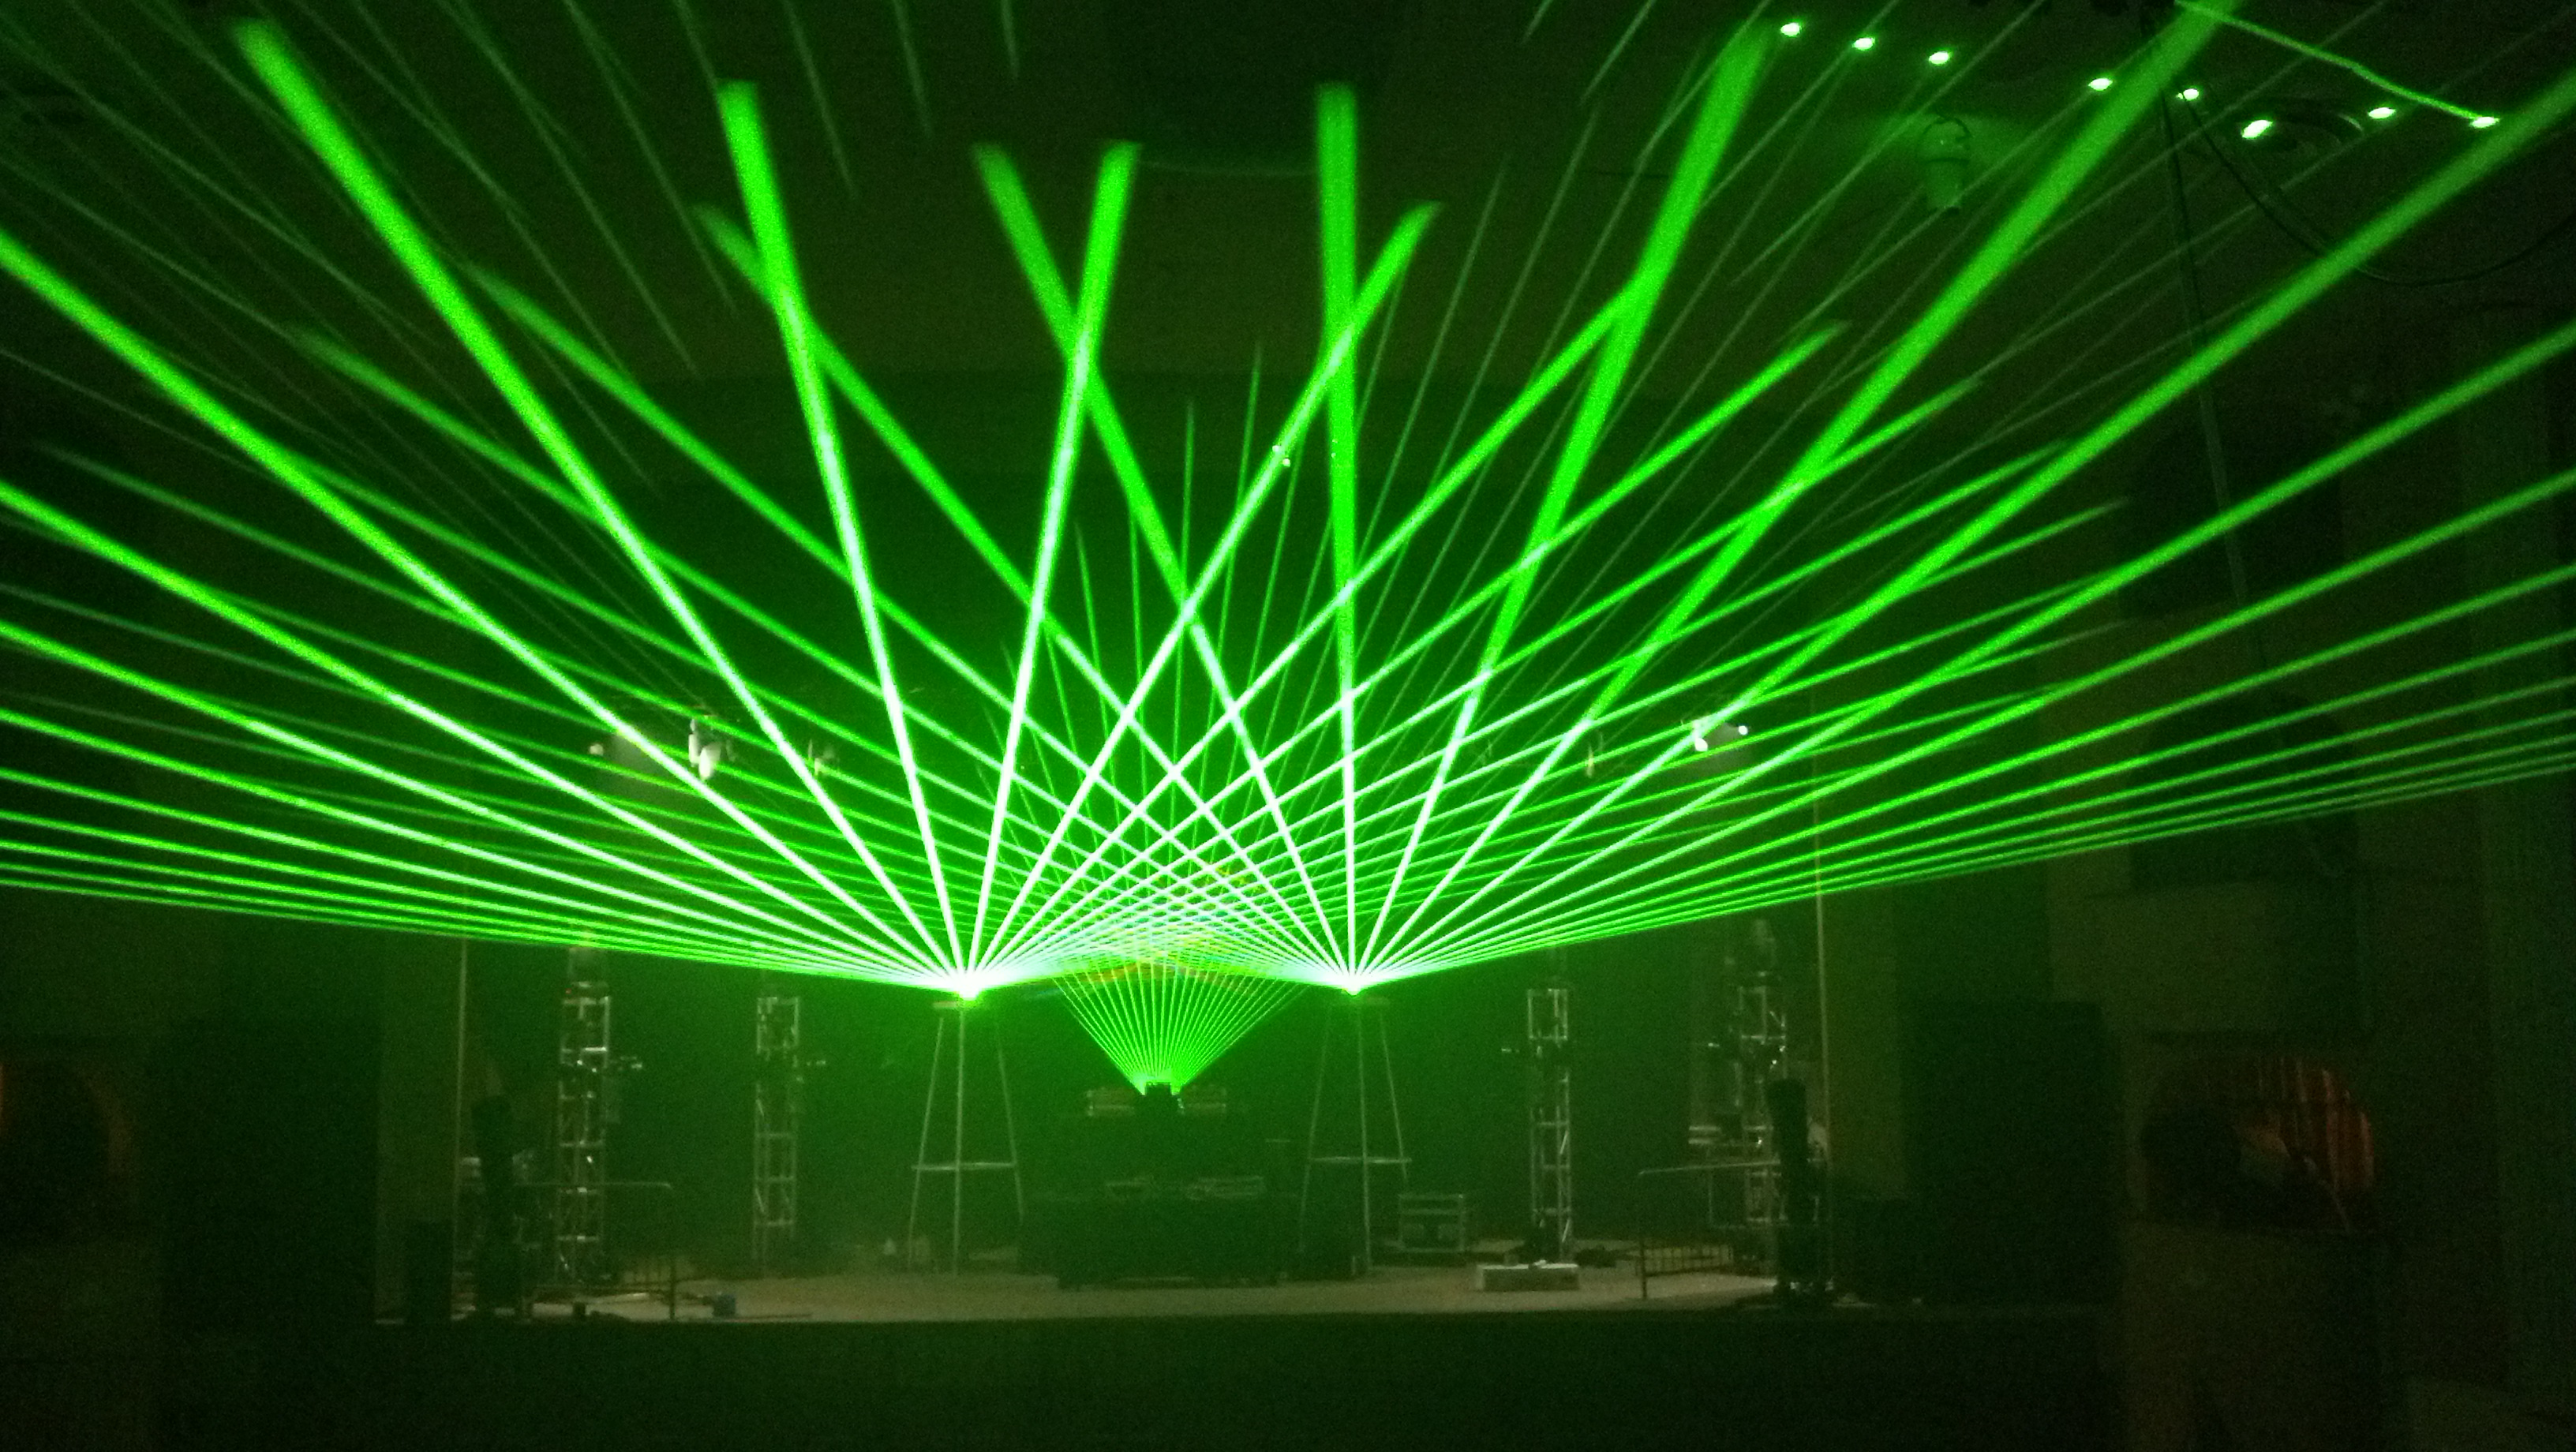 State Theatre Concert Laser Light Show P